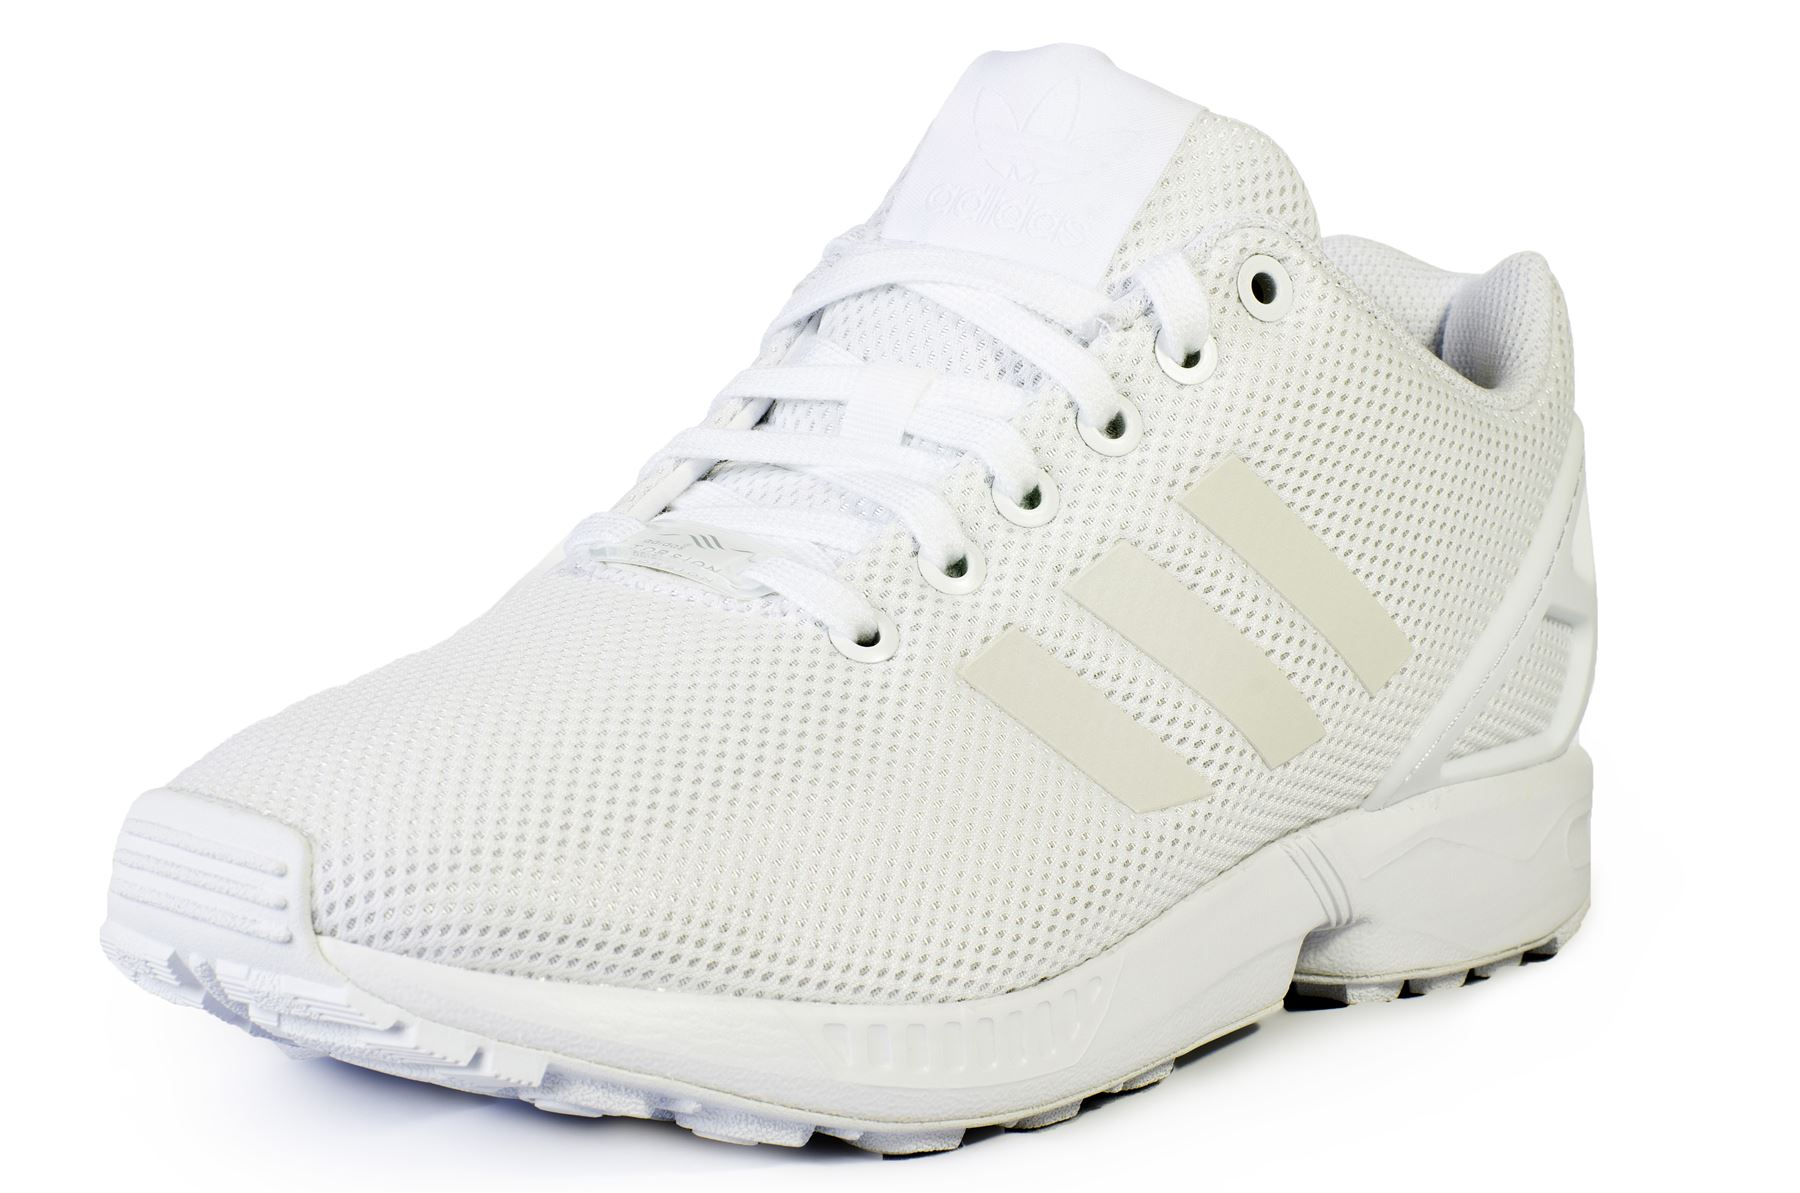 8835d0ea17e0a Mens Adidas Originals ZX Flux Running Trainers All Sizes